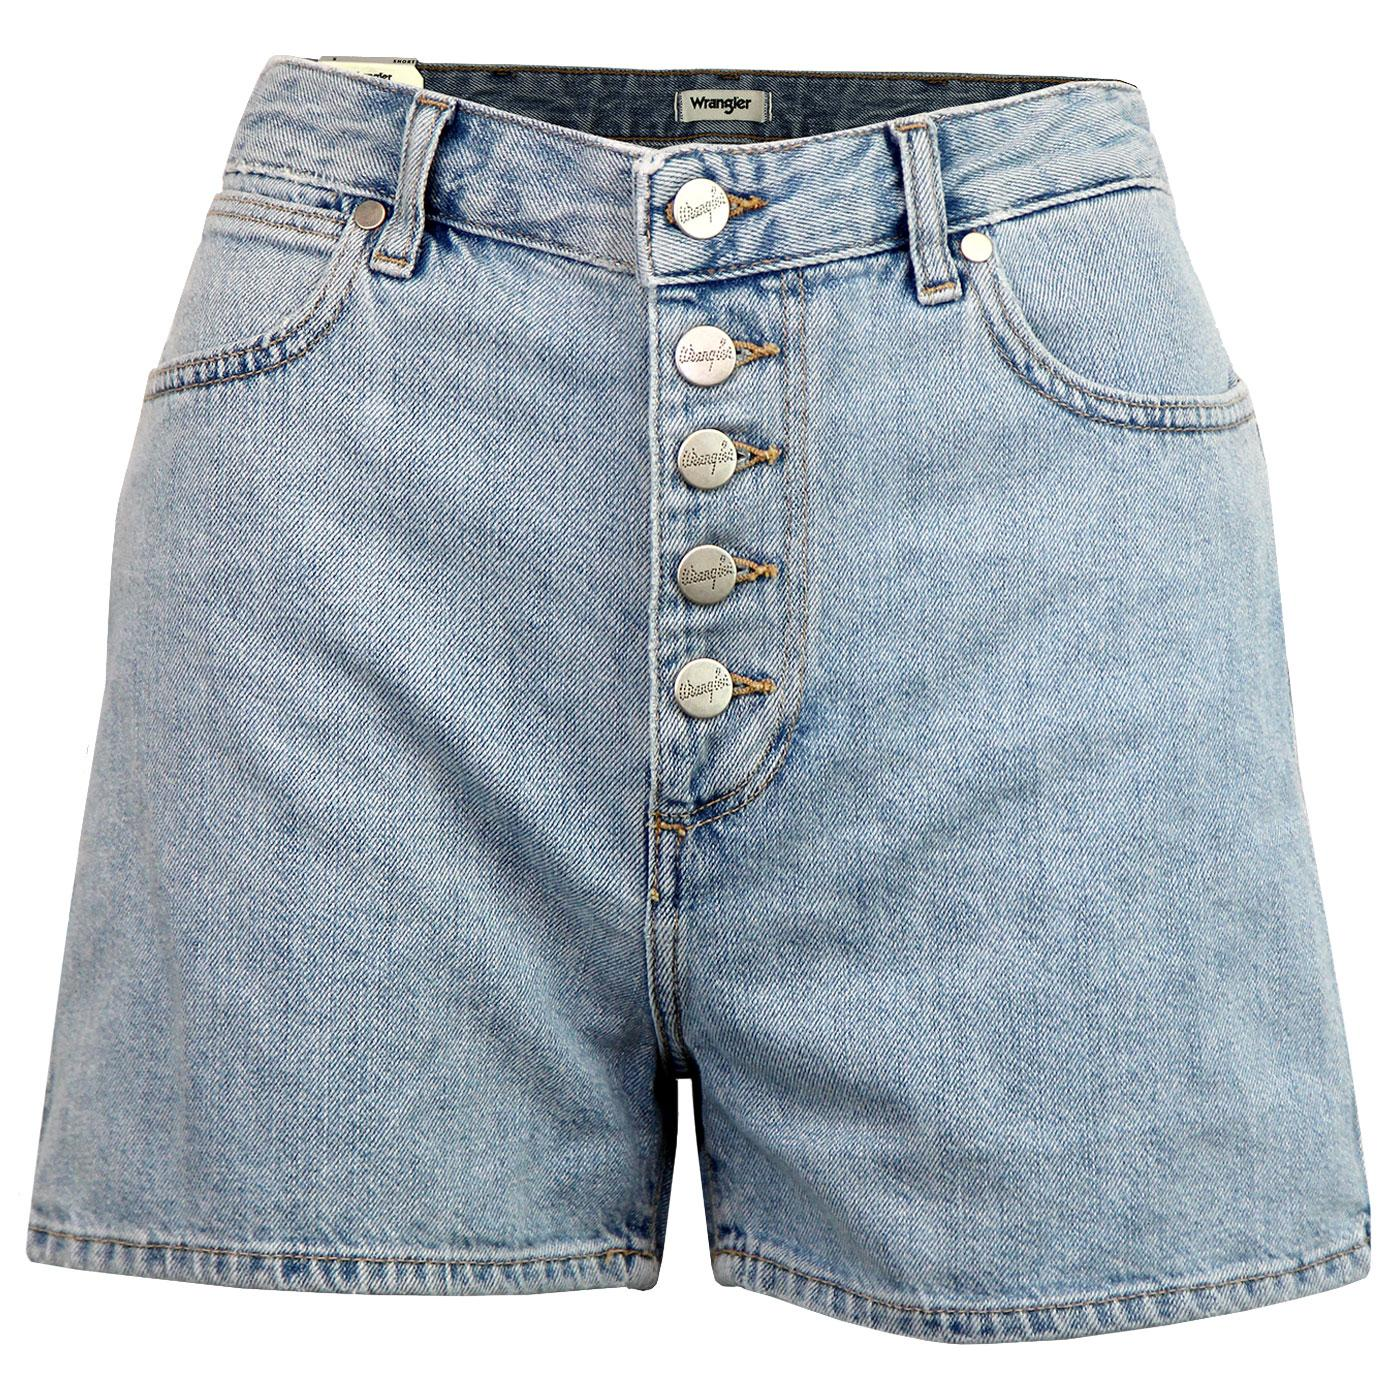 WRANGLER Women's Stonewash Denim Retro Shorts